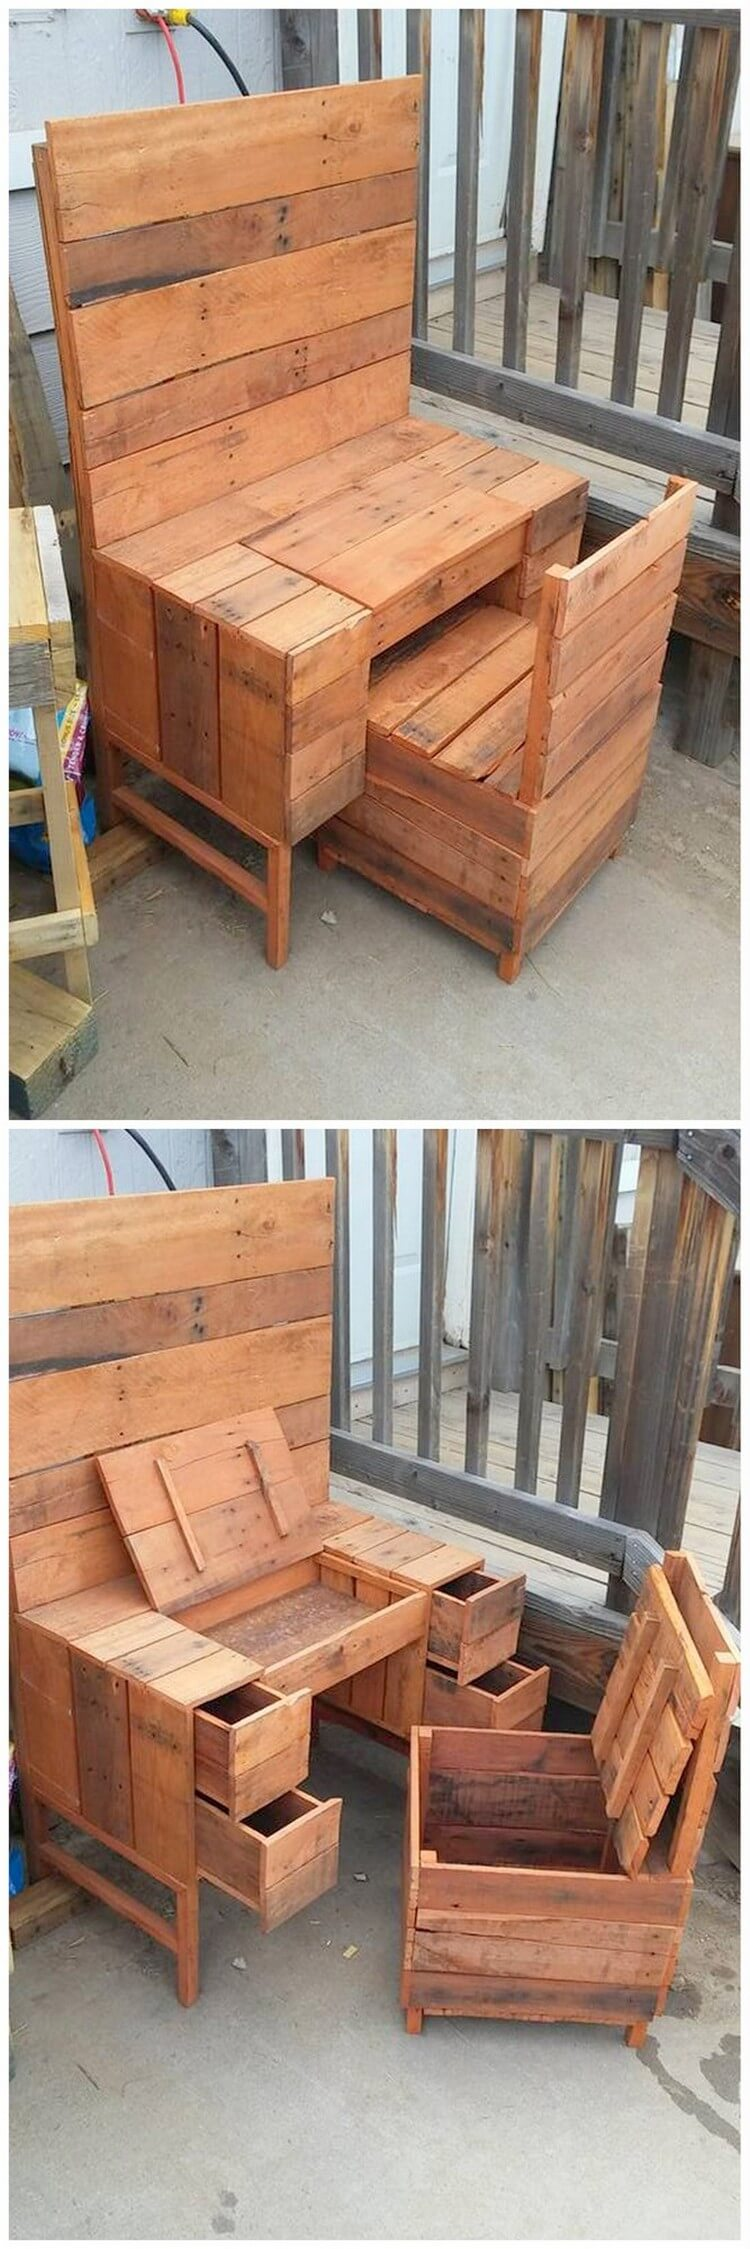 Pallet Table Desk and Chair with Storage